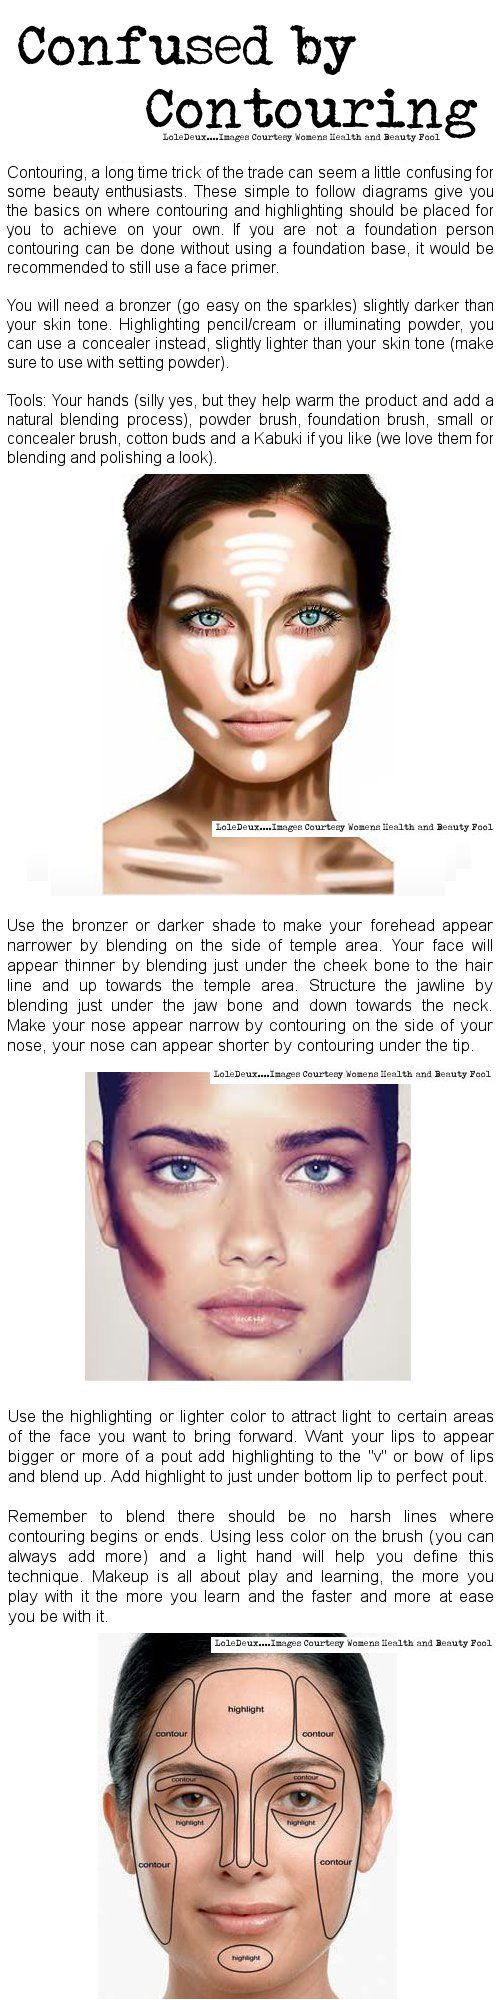 Confused about contouring? Well not anymore. #loledeux